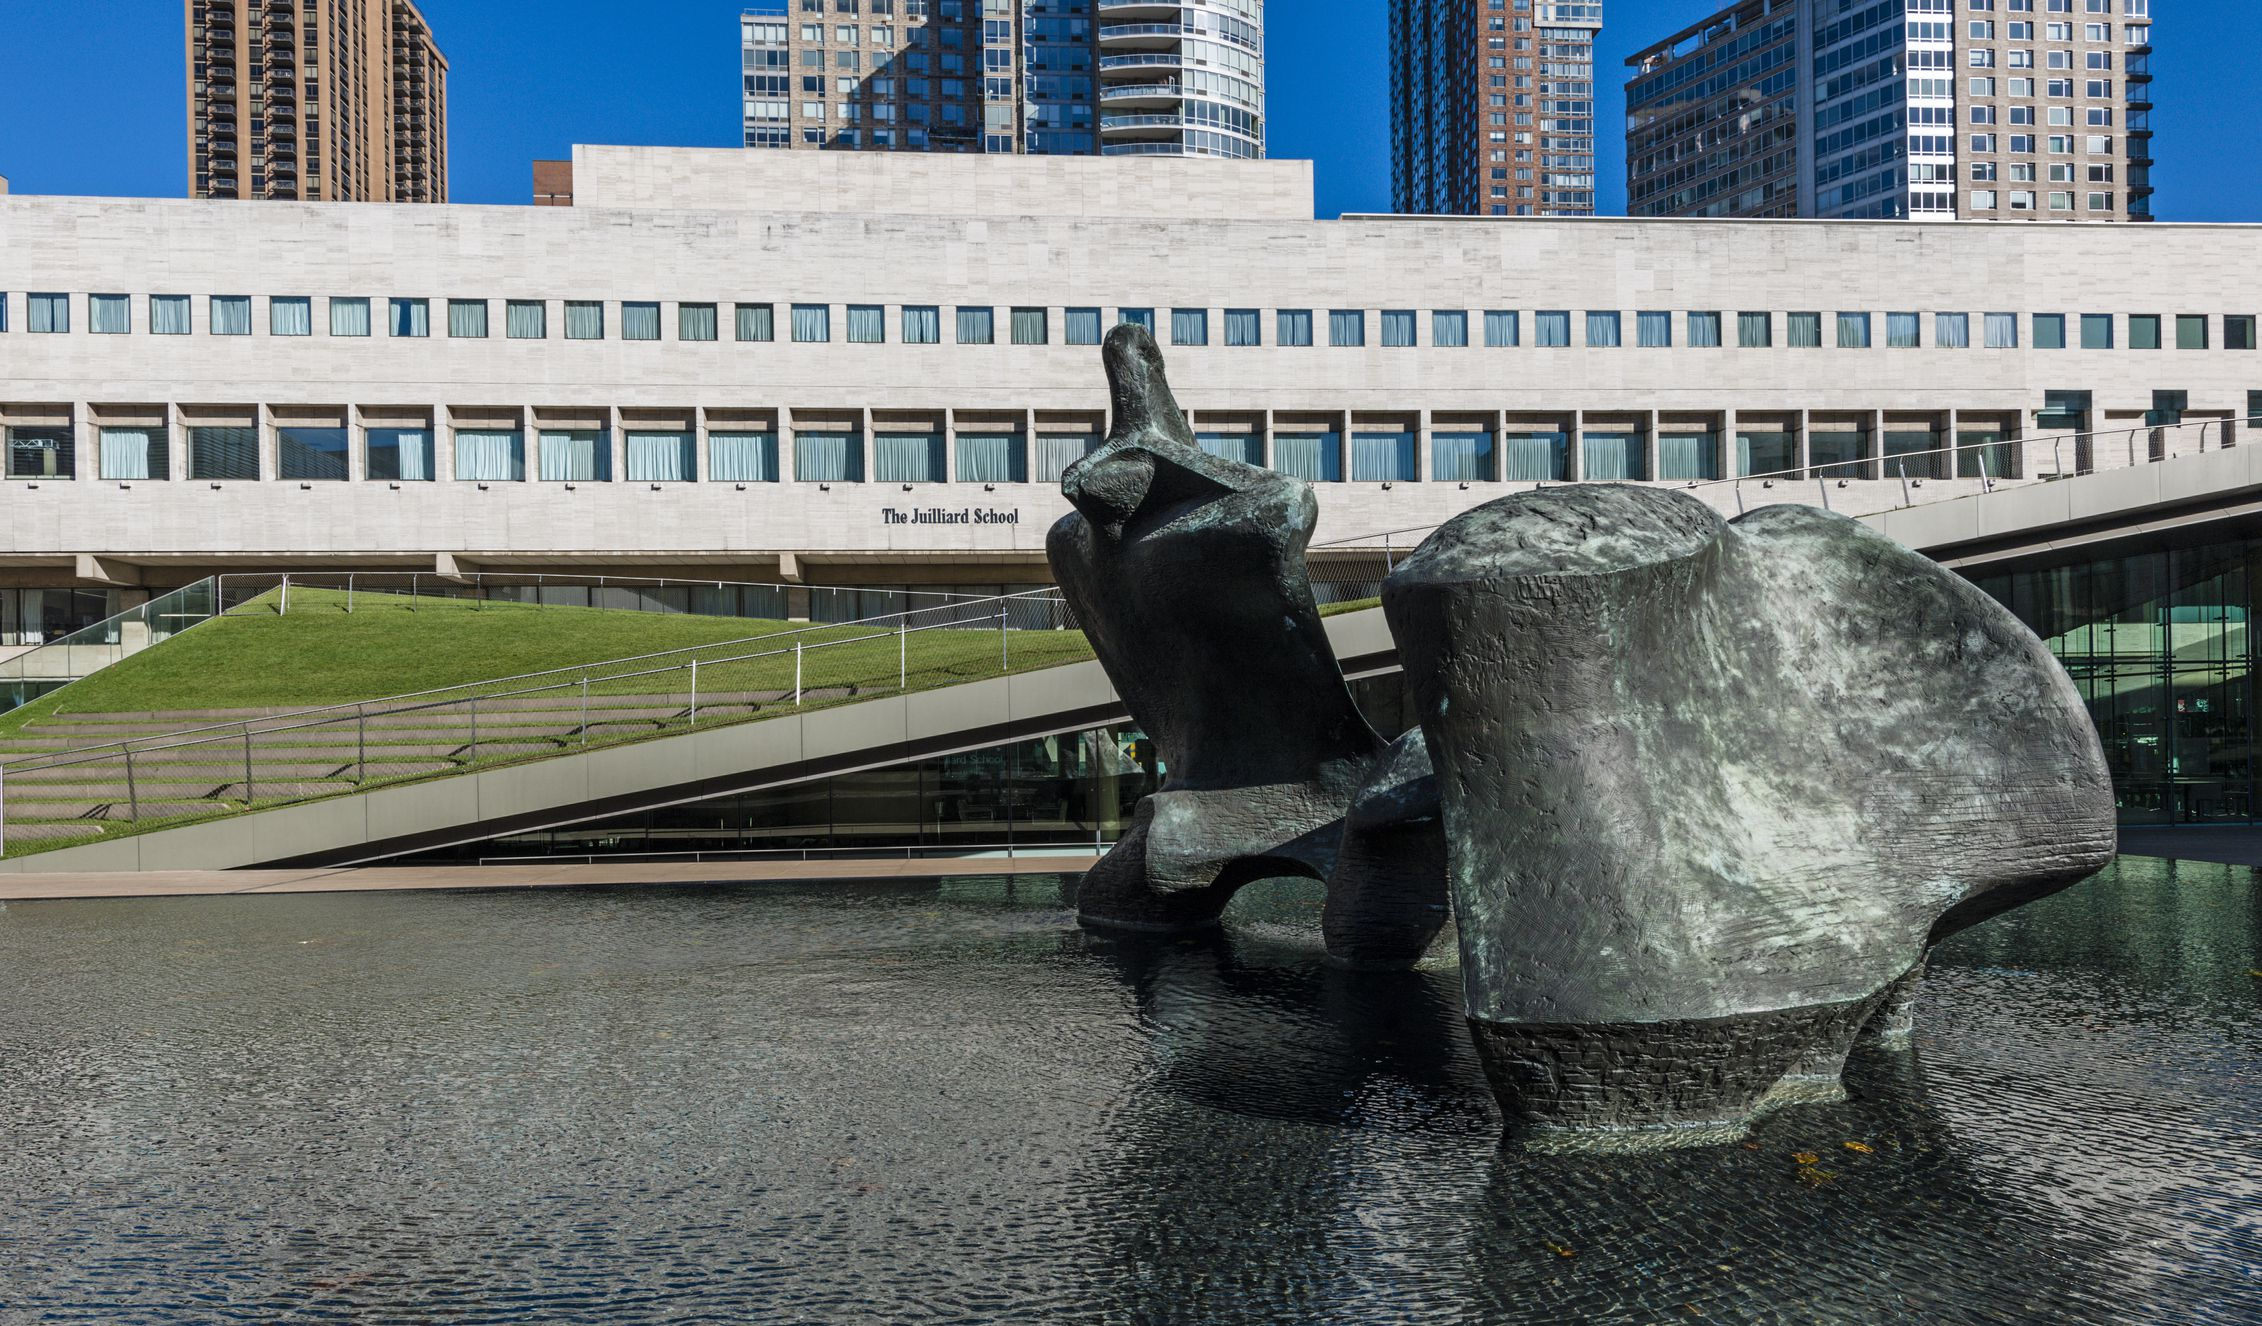 The Juilliard School and Reflecting Pool at Lincoln Center